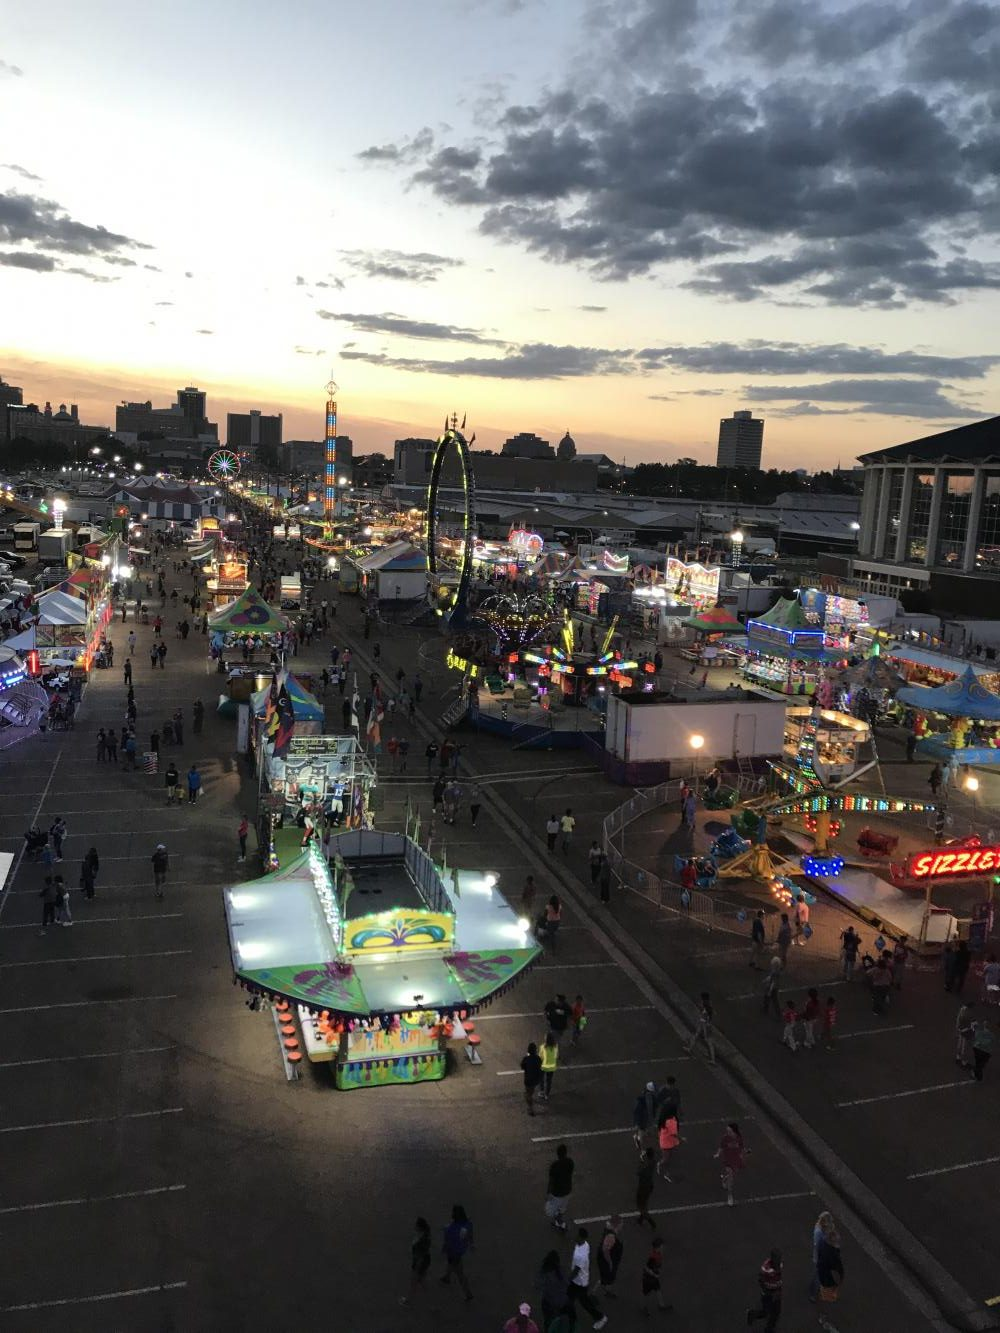 View of the fair from the Ferris Wheel. Photo courtesy of Maclain Kennedy.